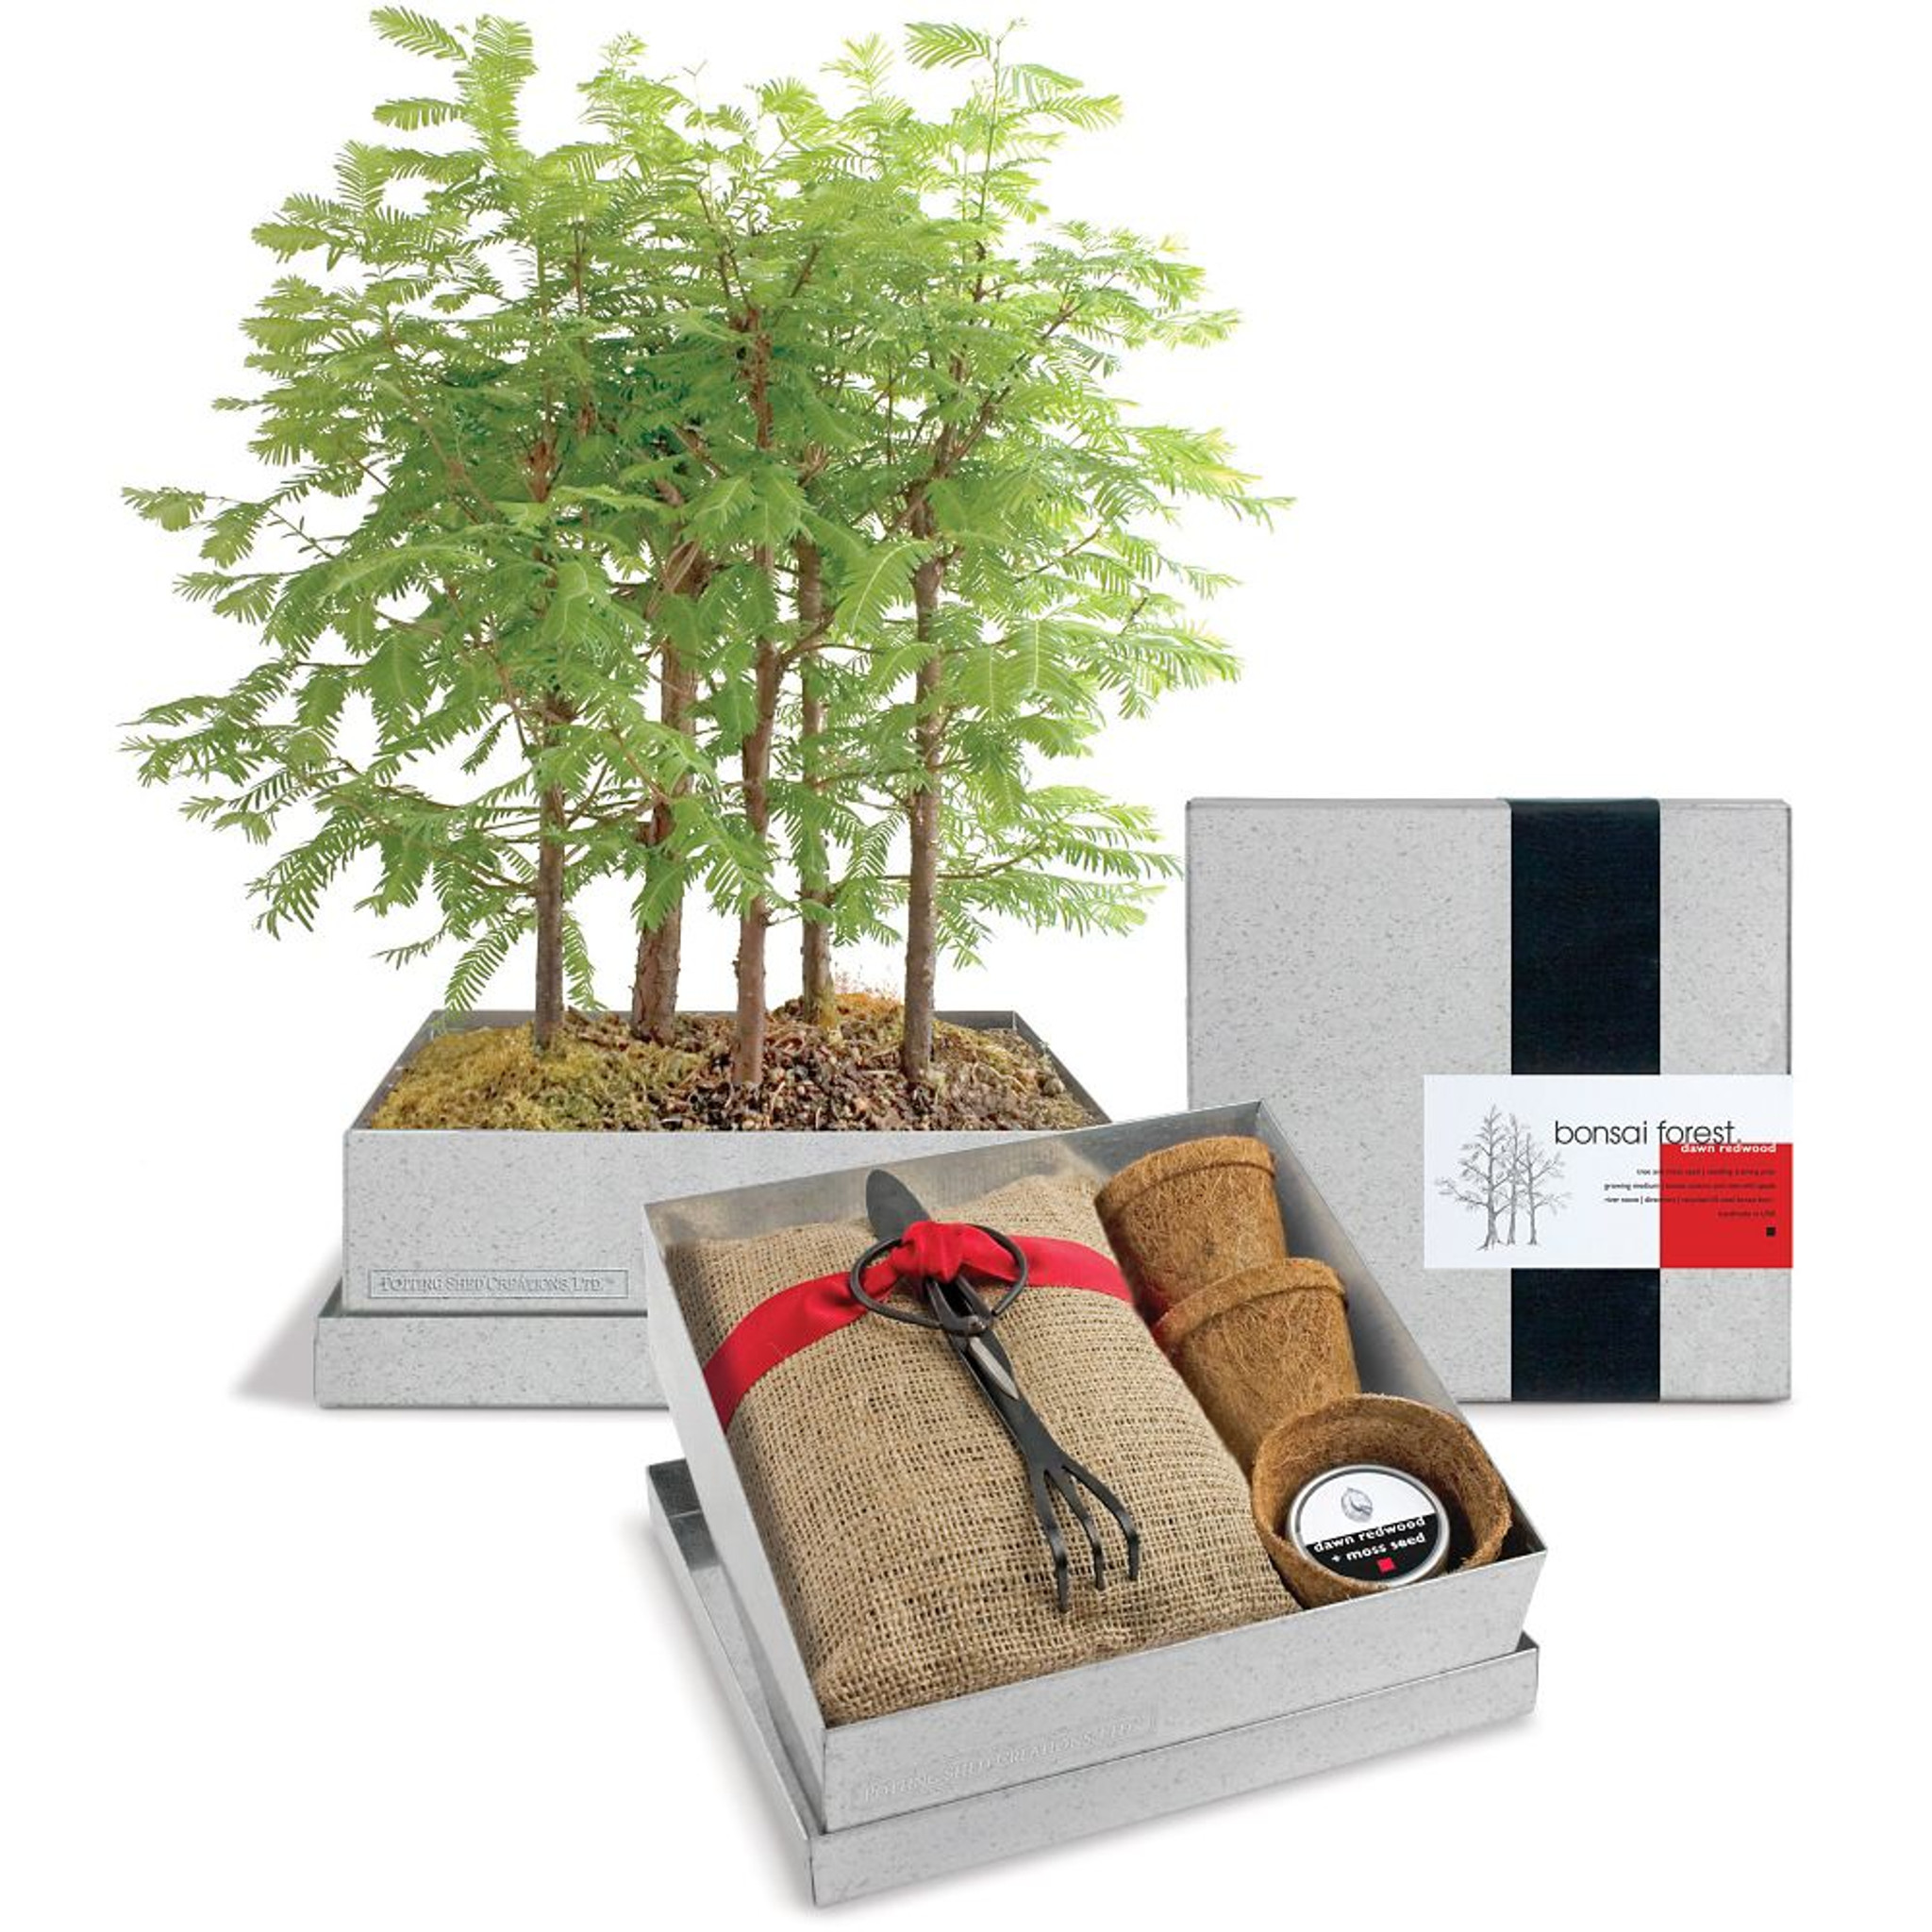 Resin Artificial Zen Garden Plants Mini Artificial Bonsai Tree Indoor Kit Home Decorations For Living Room And Office Never Fade Bonsai Tree Guest Greeting Pine Bonsai Plastic Plant Decoration Mimbarschool Com Ng